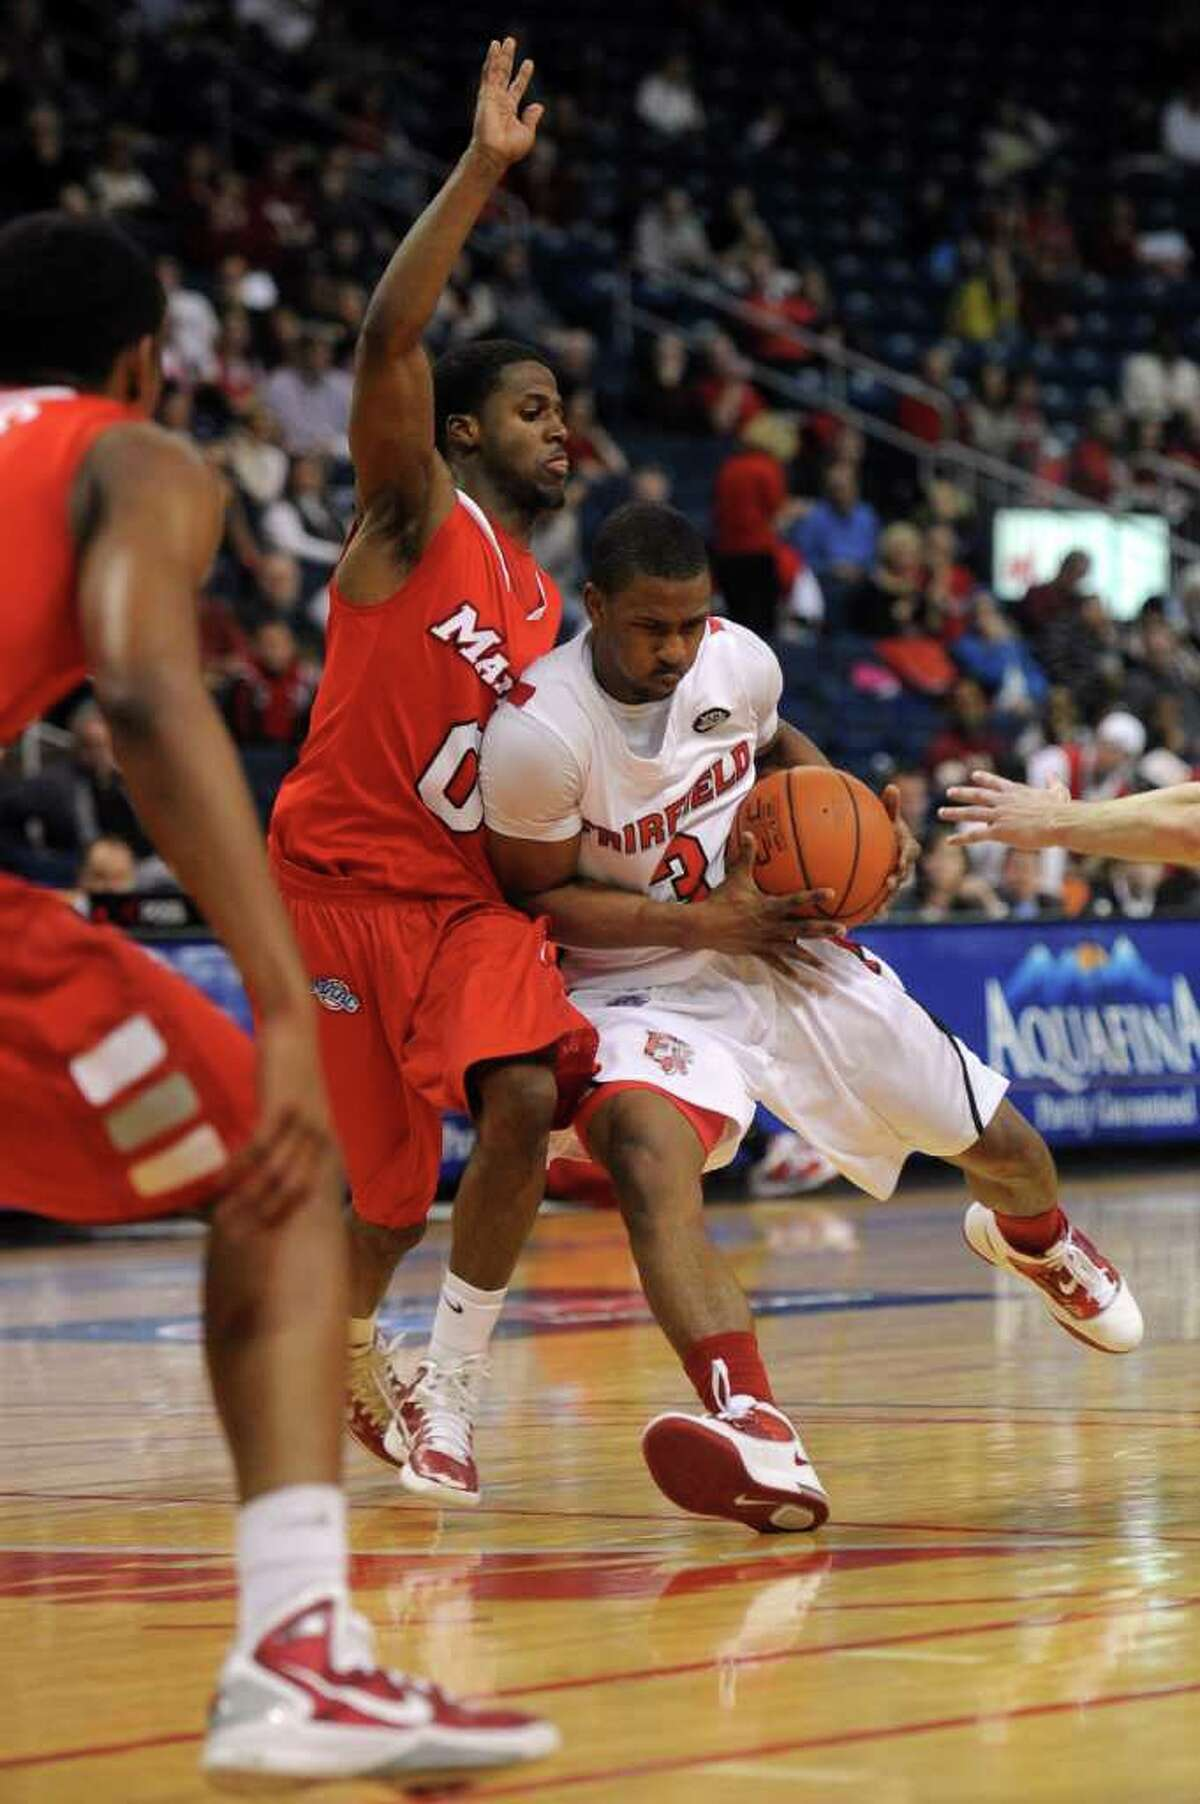 Fairfield University's Derek Needham dribbles as he is guarded by Marist's Devin Price during Saturday's MAAC quarterfinal game at Webster Bank Arena at Harbor Yard on March 5, 2011.